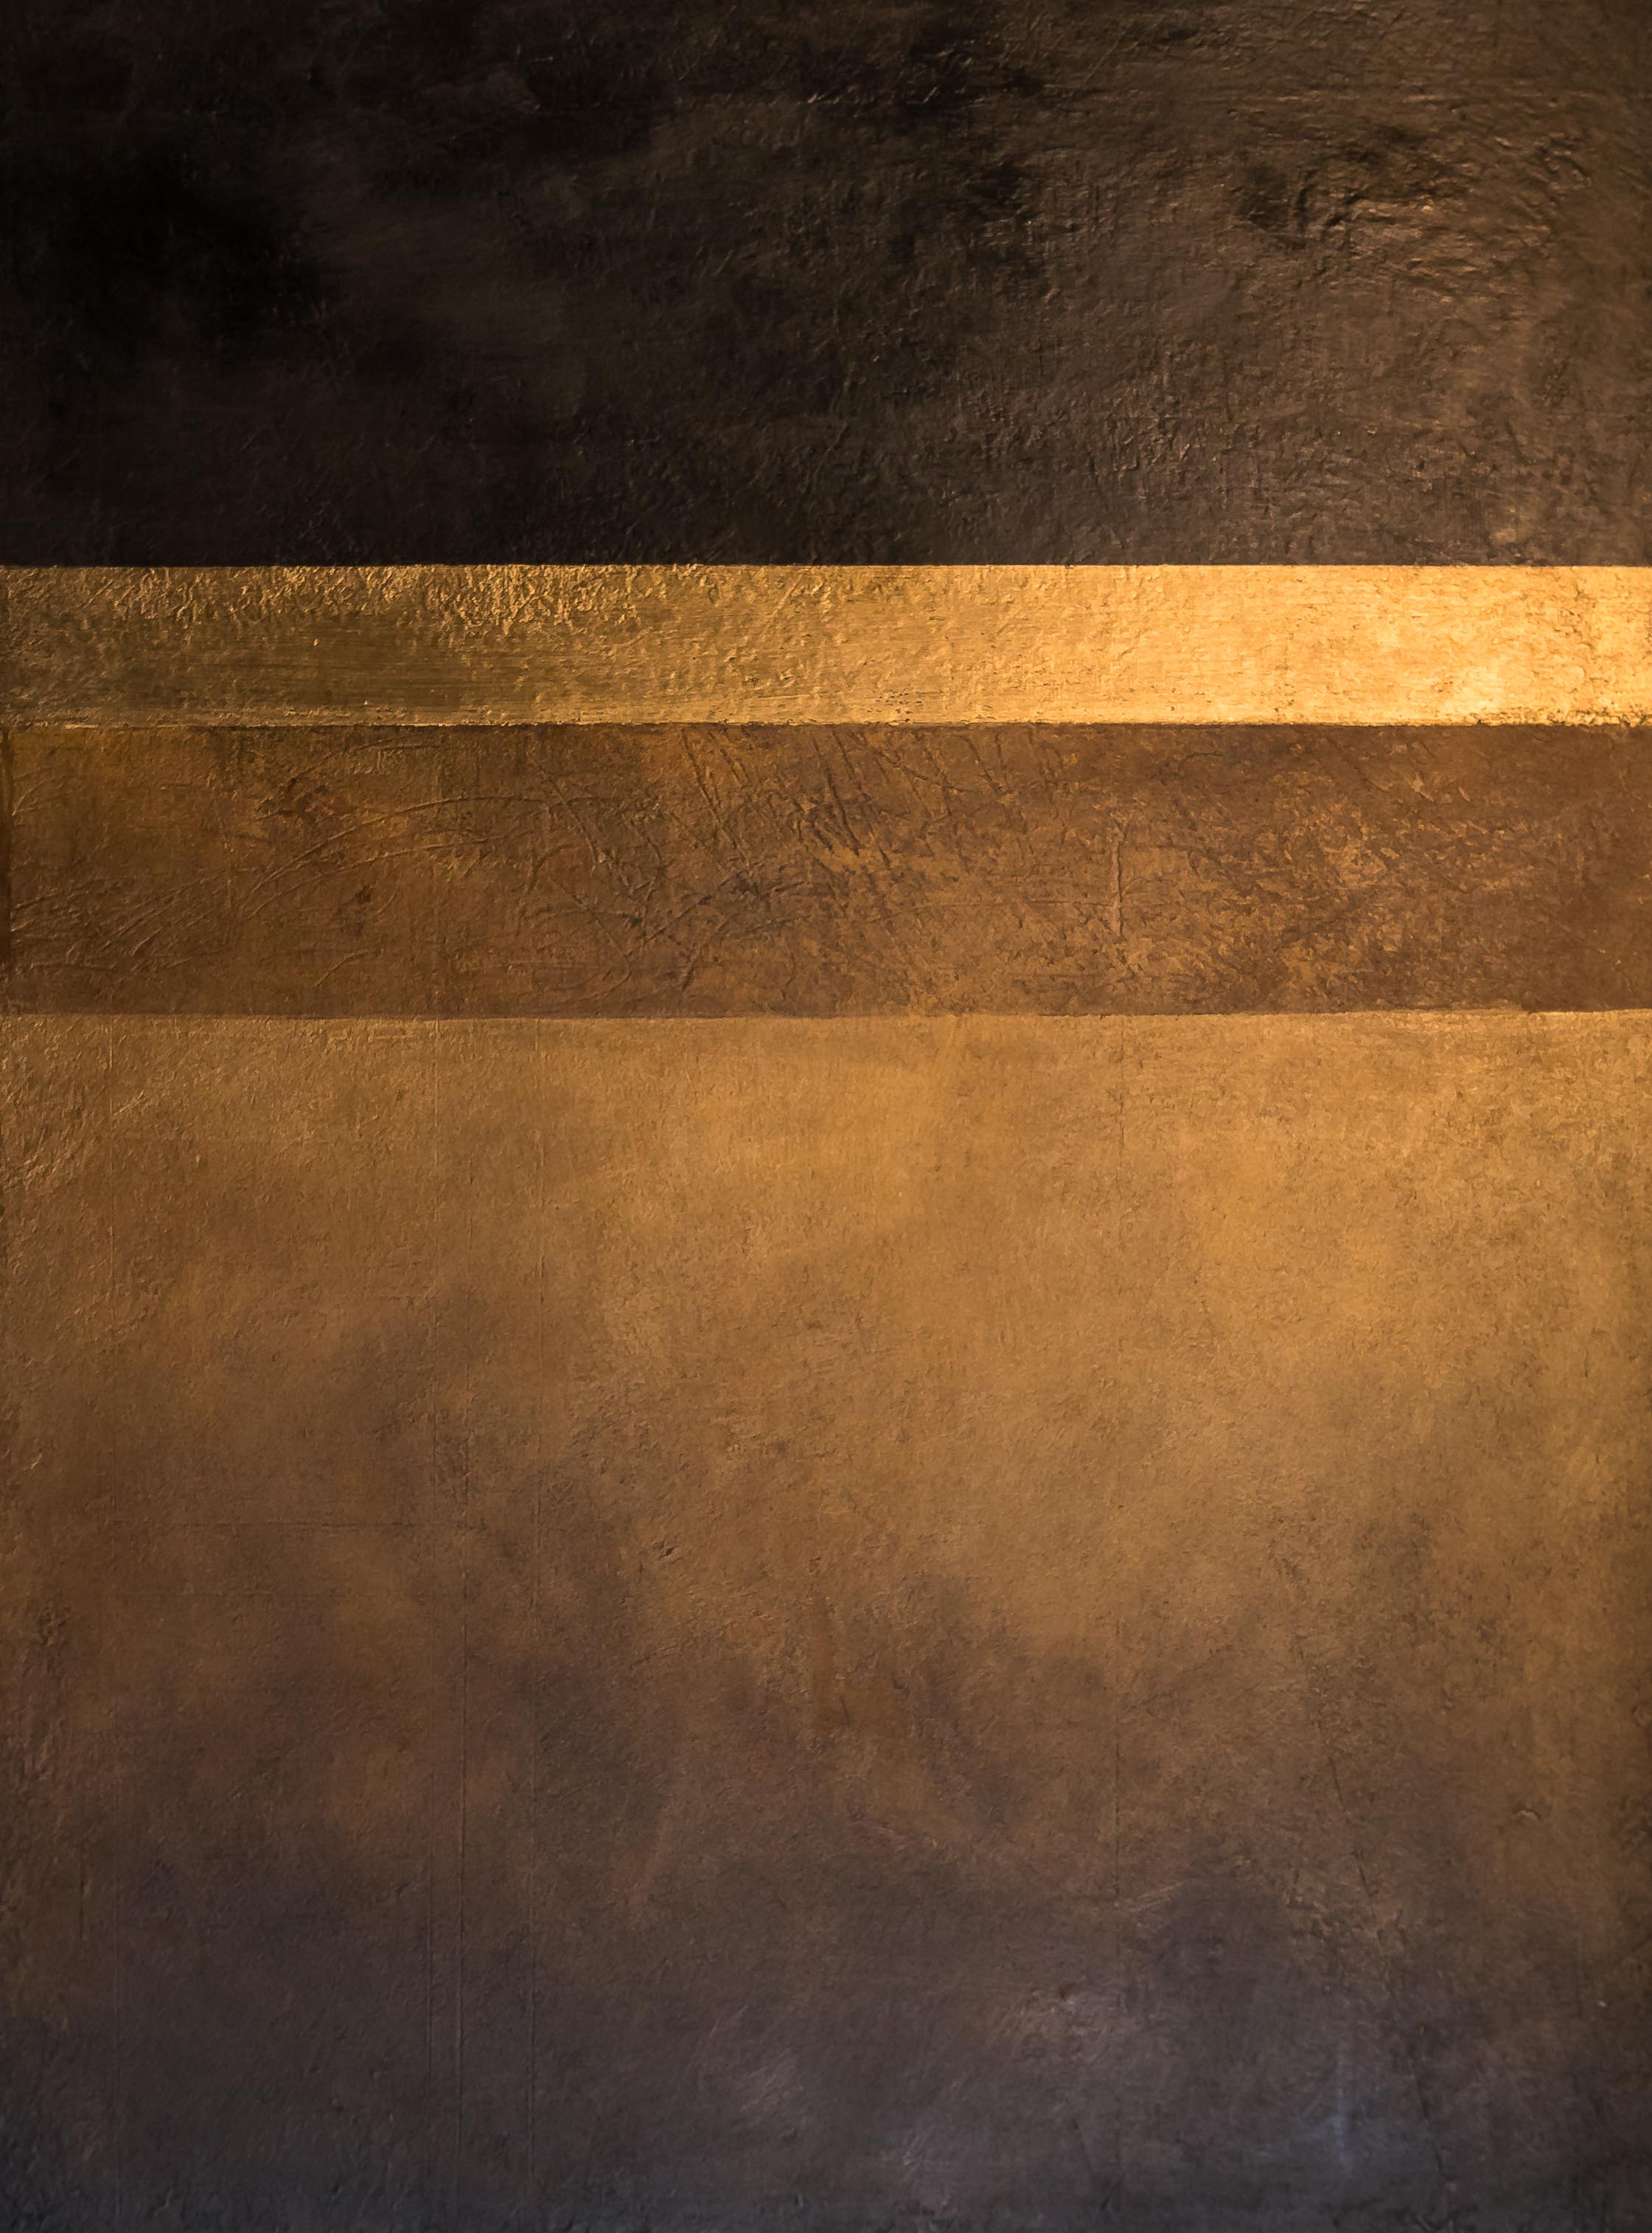 contemporary gold landscape painting abstract peter corr